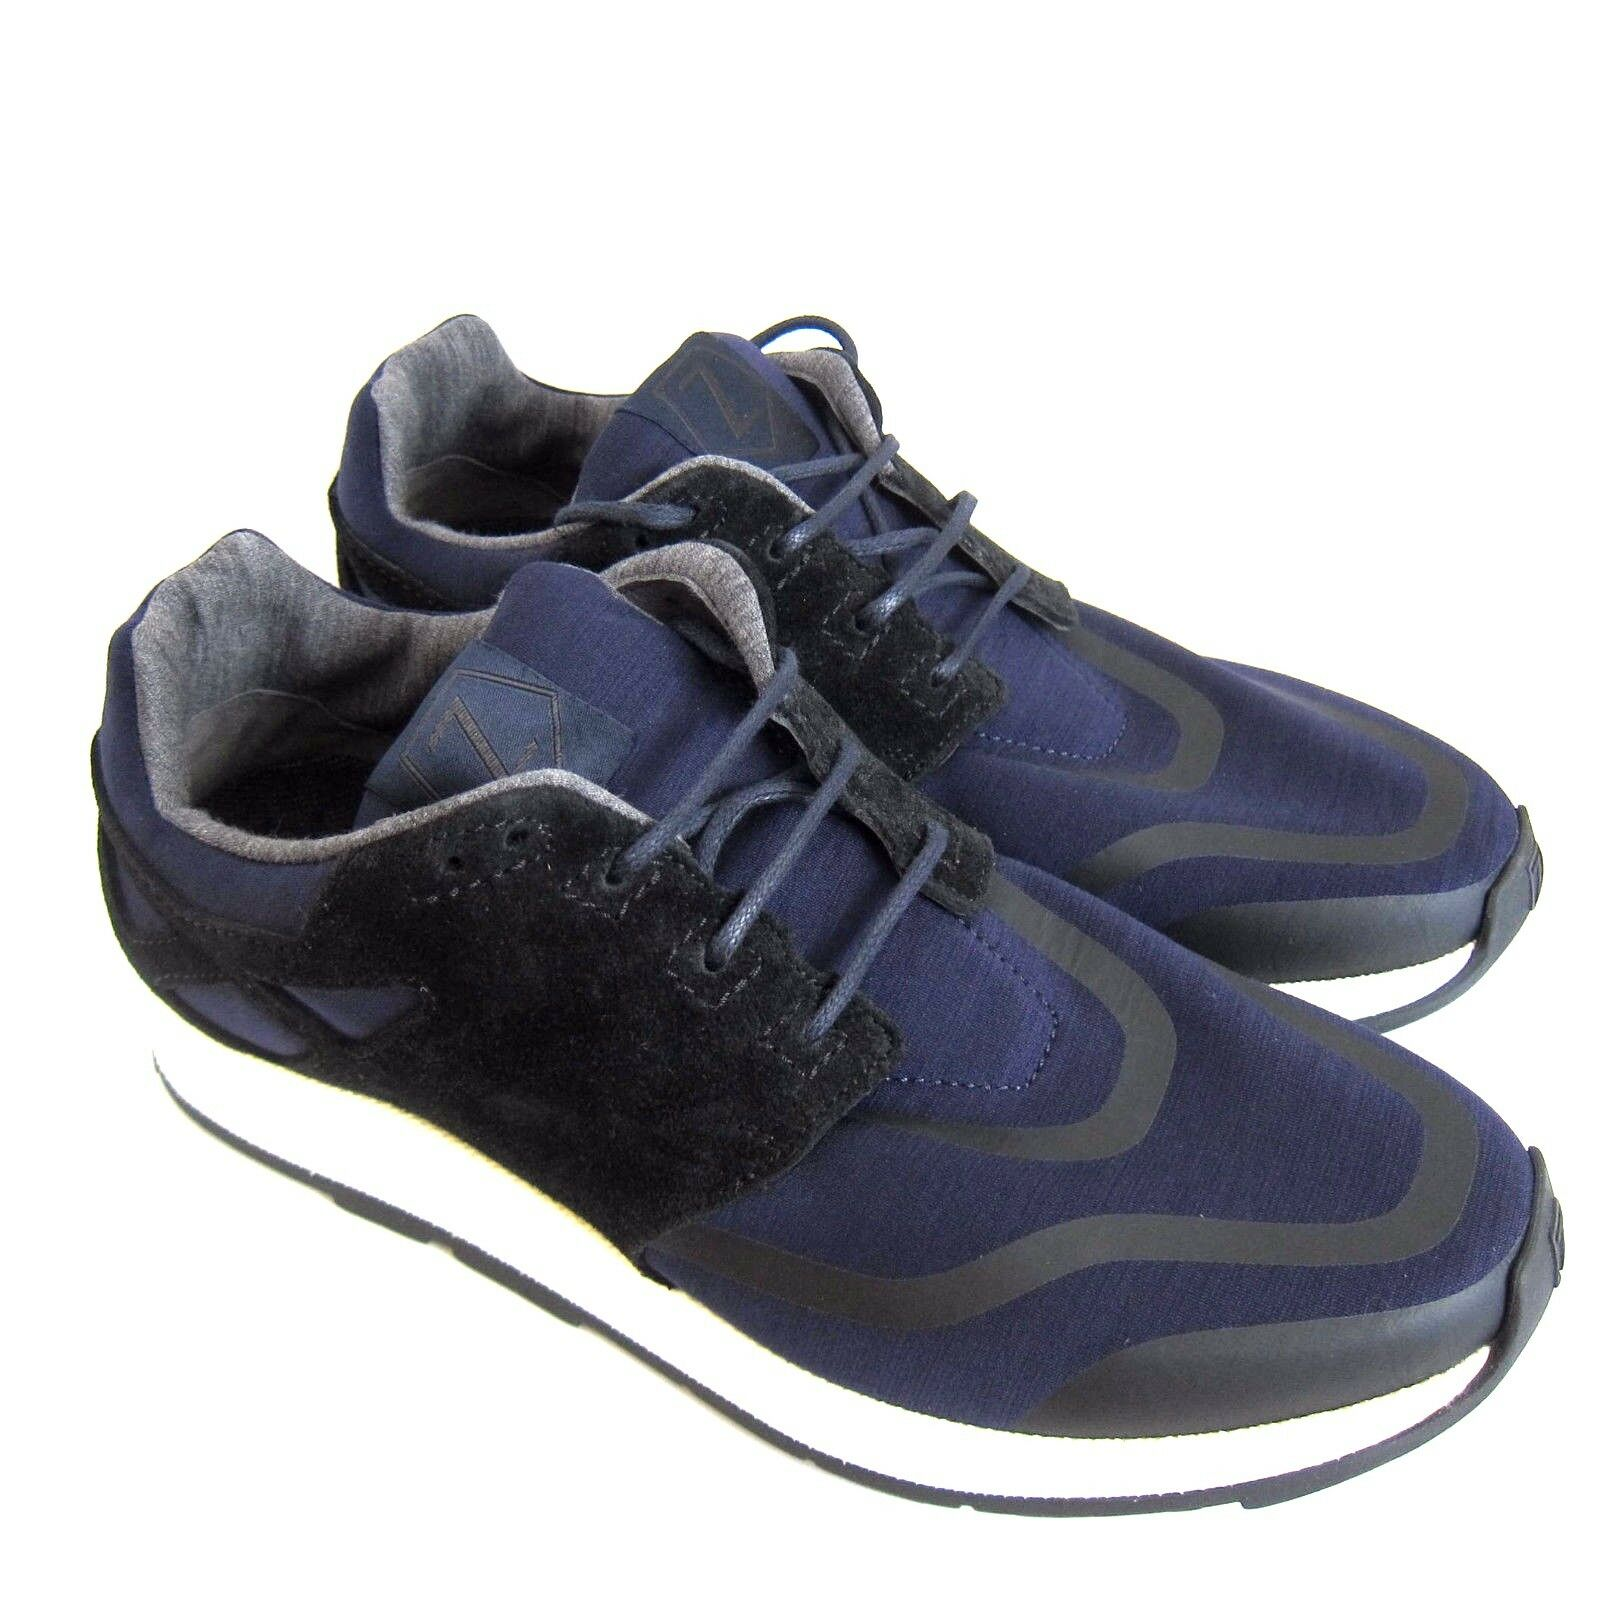 C-1482119 New Z Zegna Blue Suede/Cloth Sneakers Shoes Size US 10.5